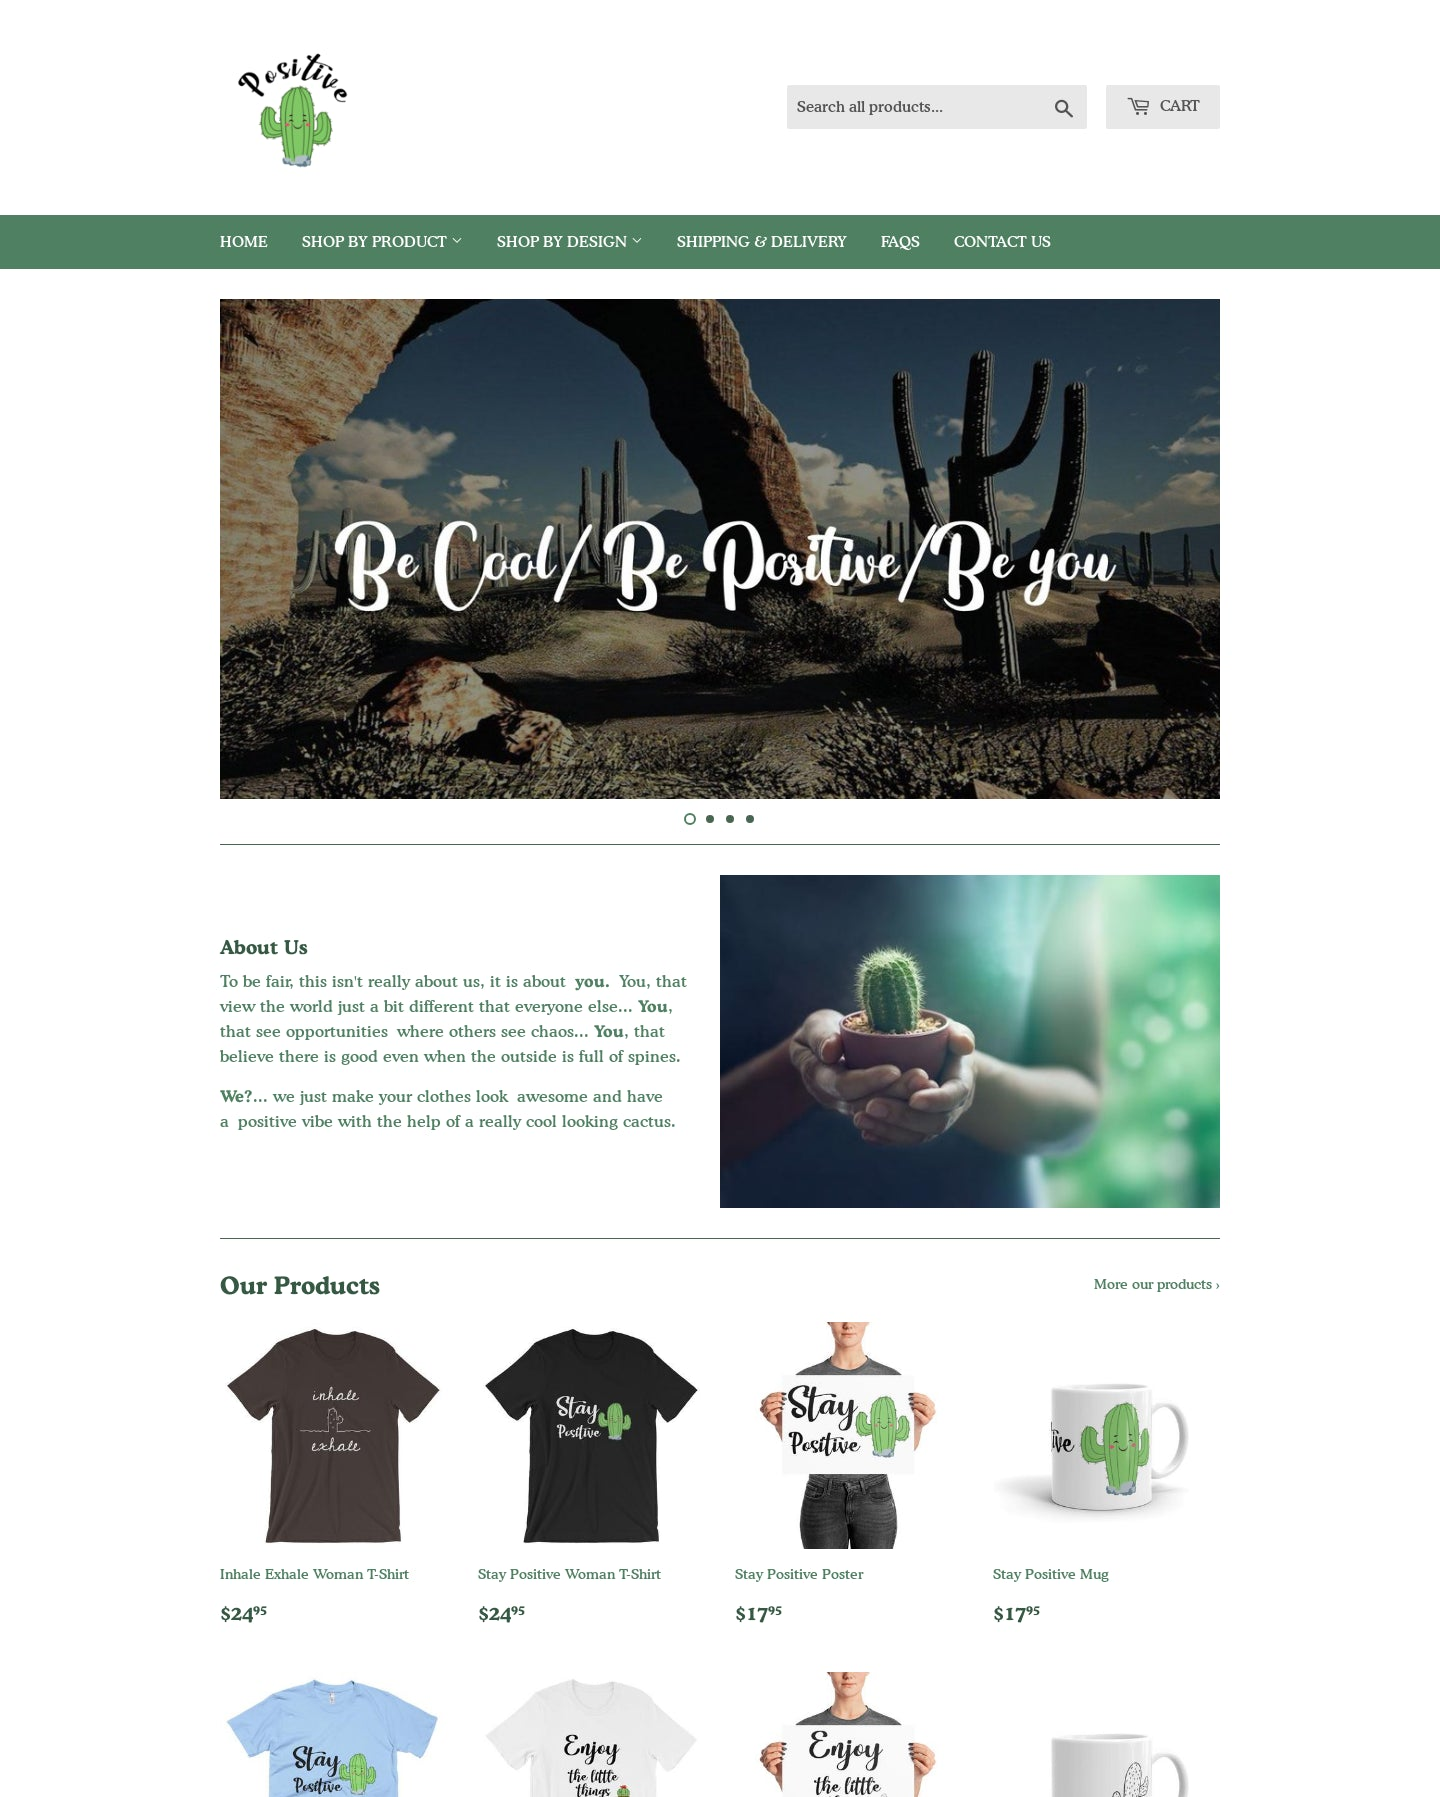 ThePositiveCactus Printing On Demand Shopify Store with Tremendous Growth Opportunity Screenshot - 1